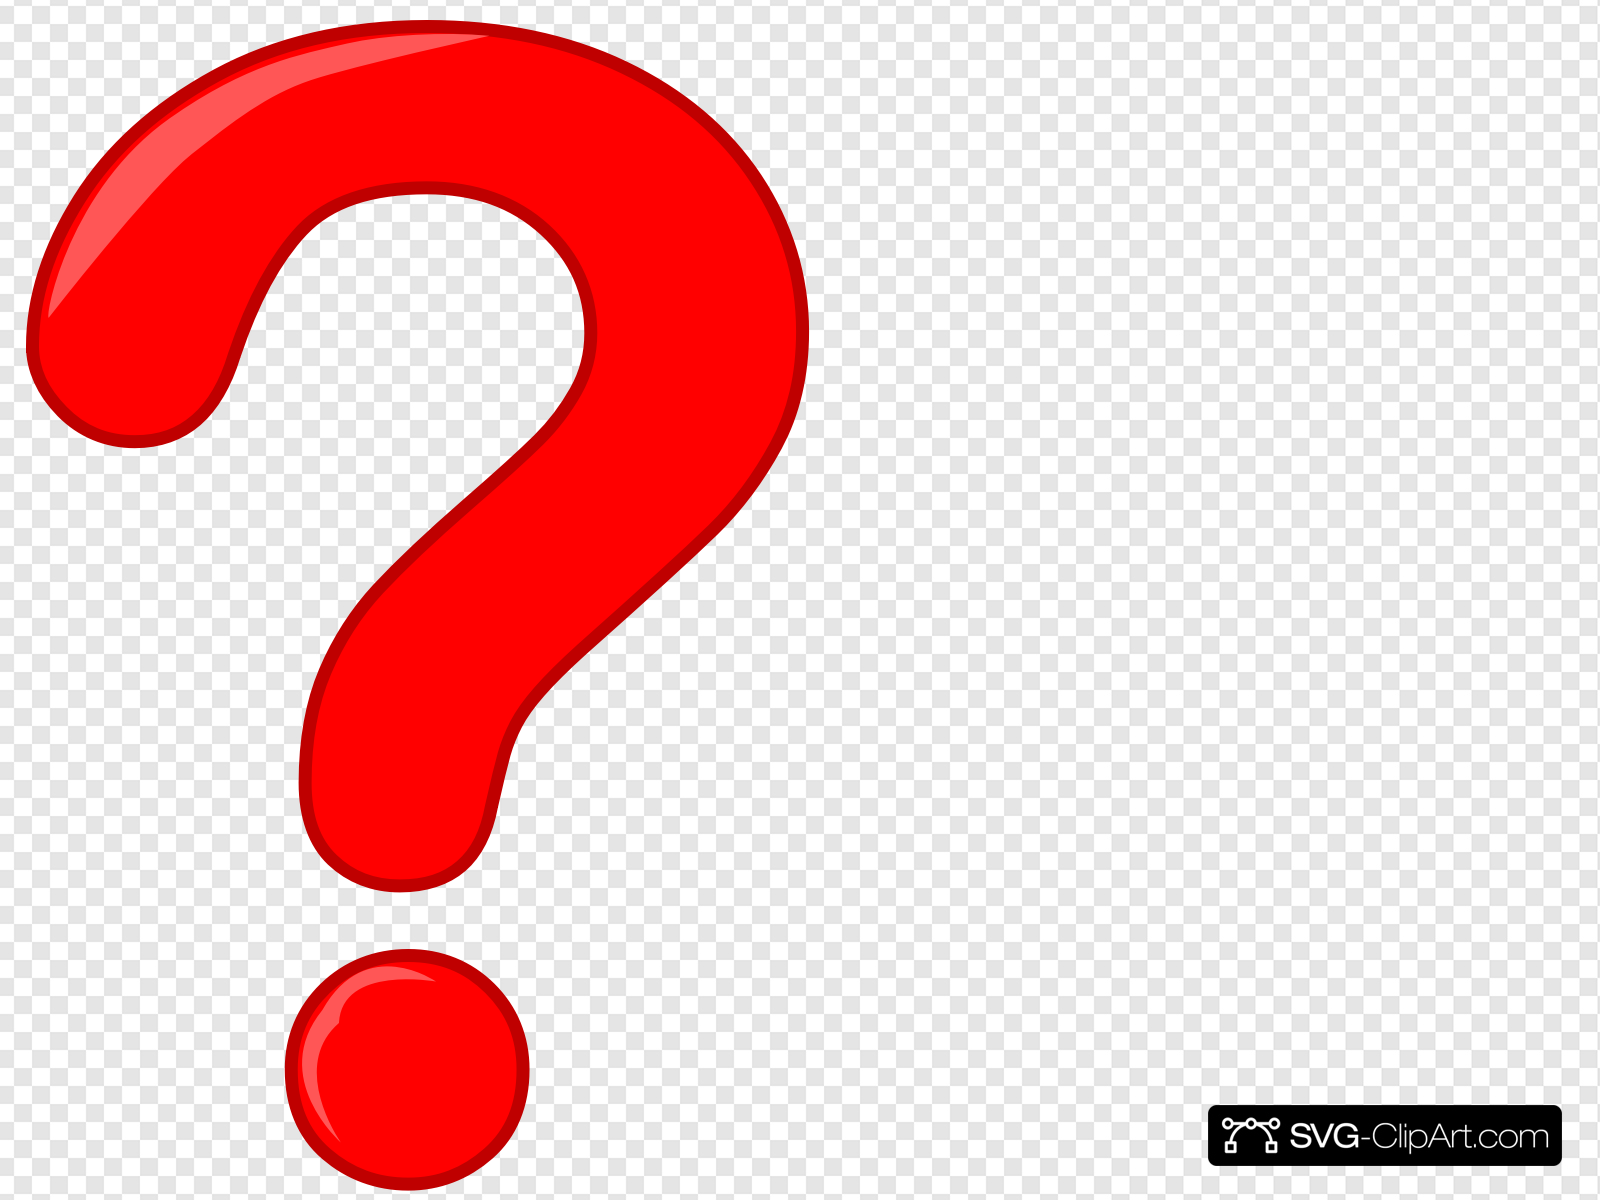 Question Mark Clip art, Icon and SVG.